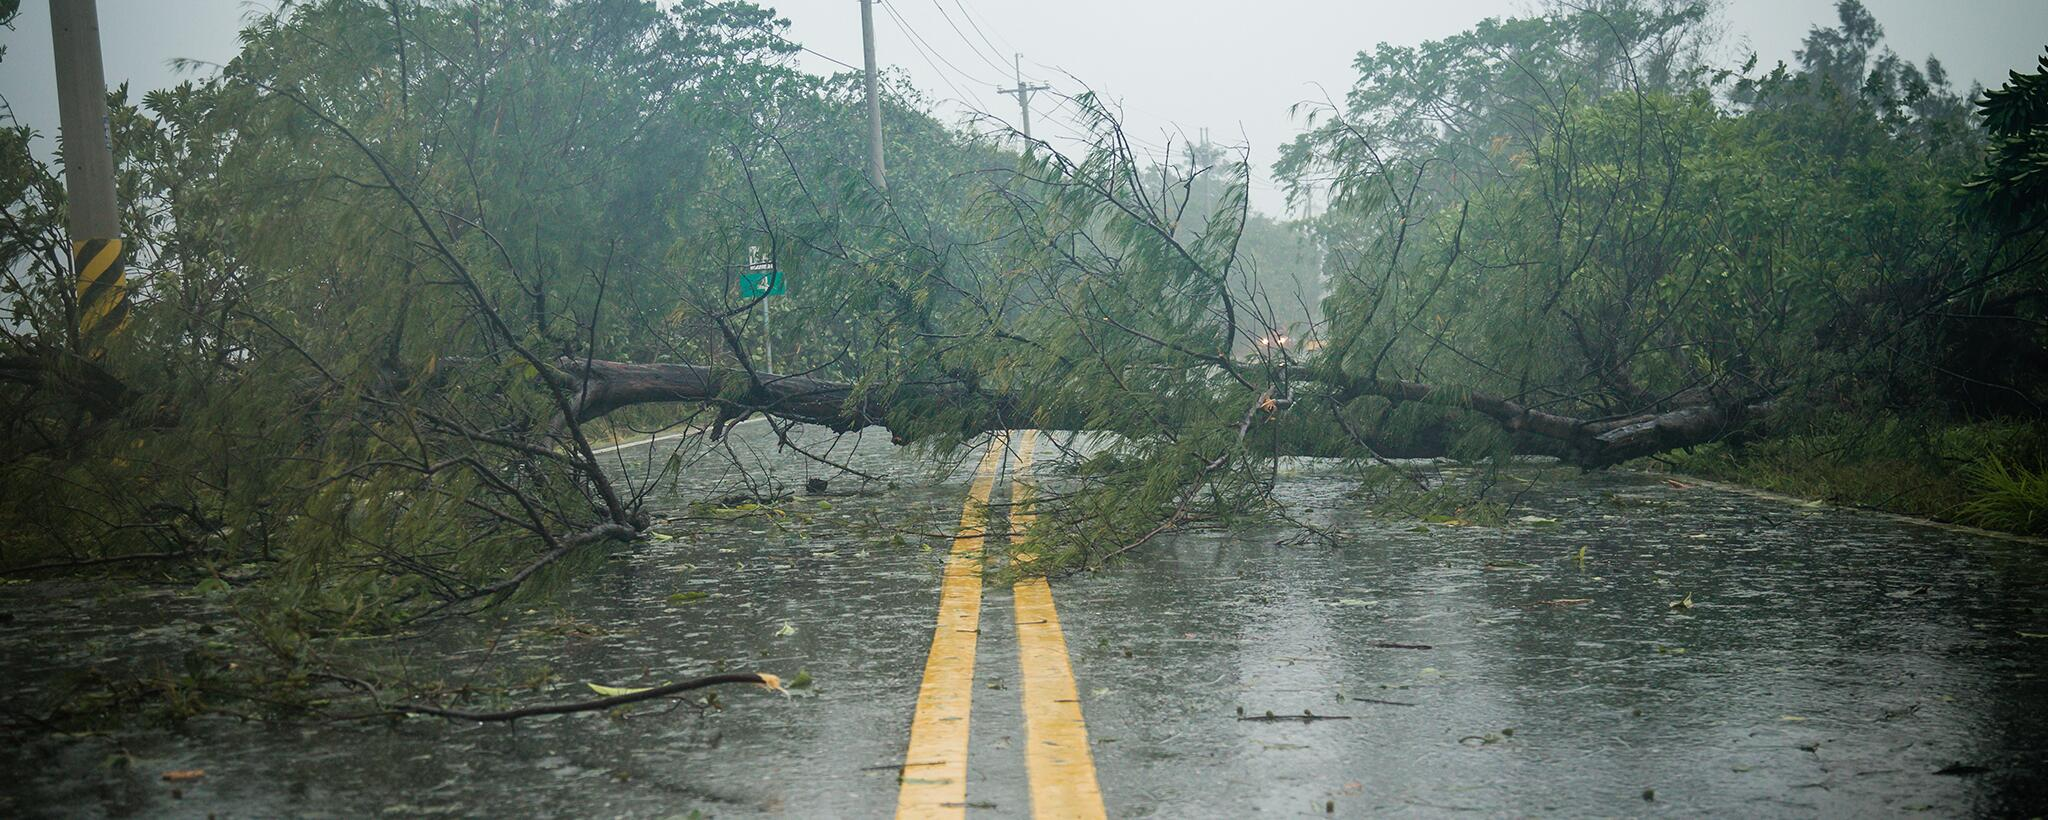 a downed tree blocks a road during a rain storm